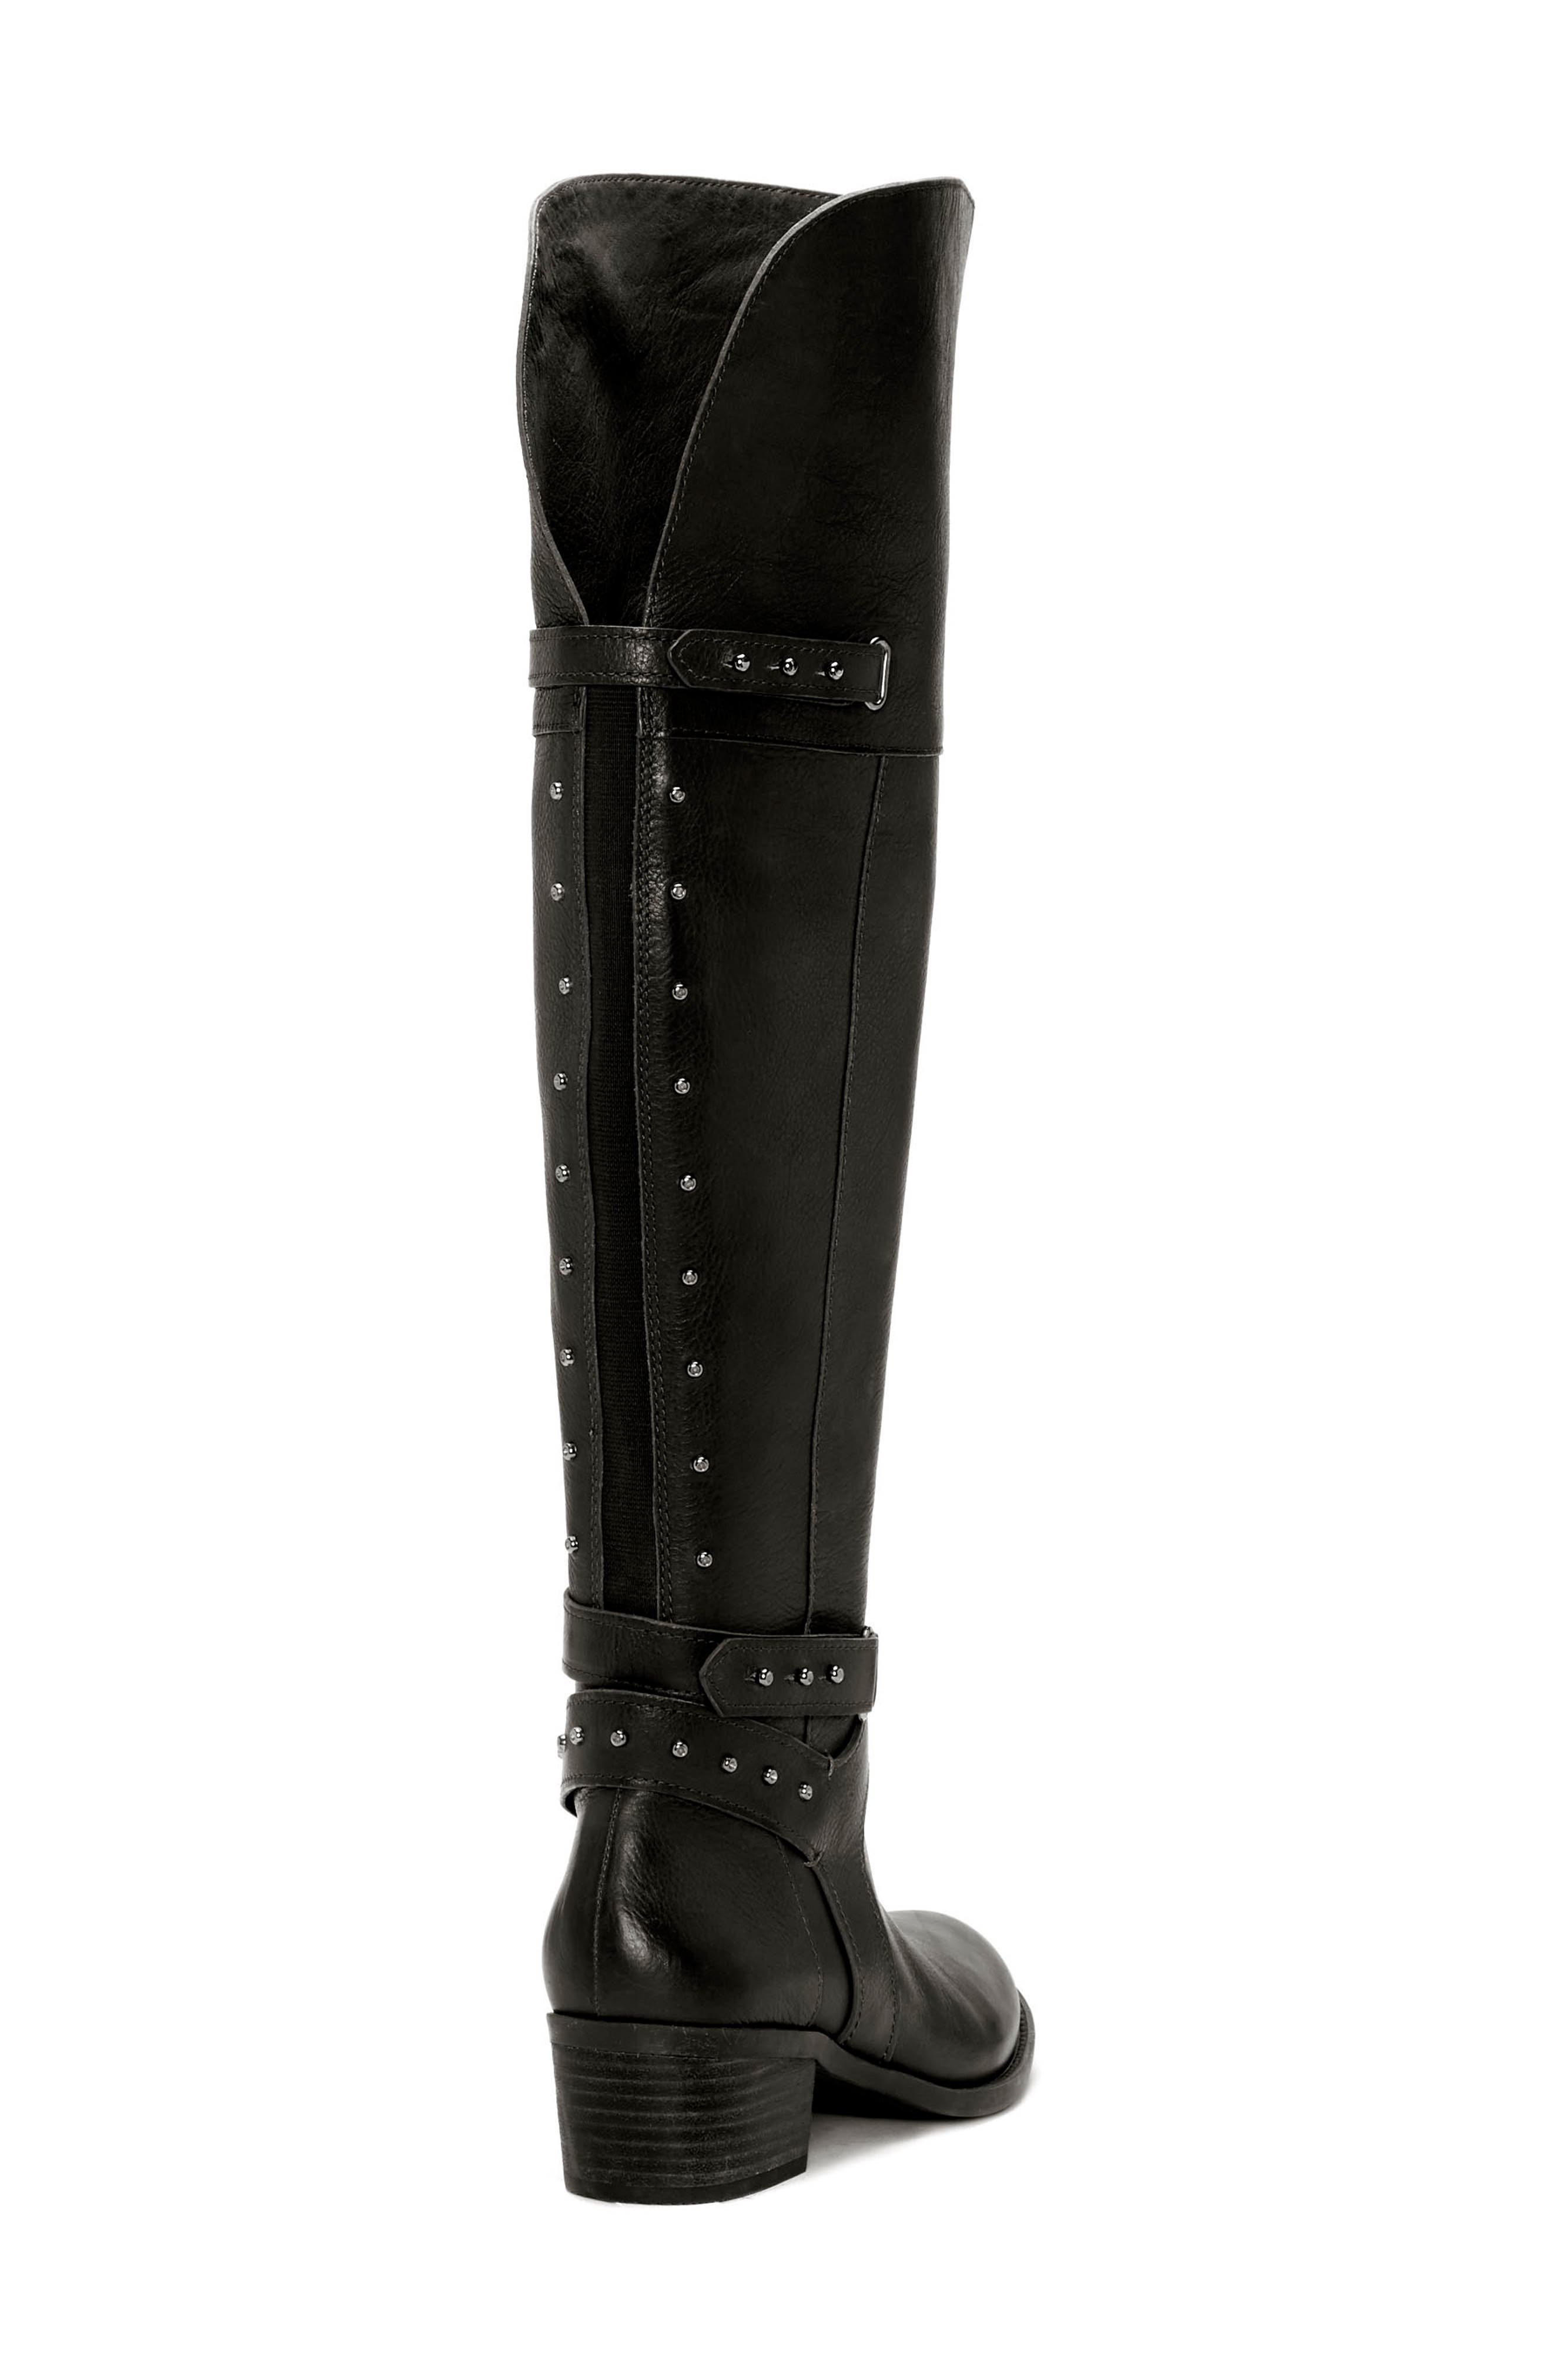 Bestant Over the Knee Boot,                             Alternate thumbnail 2, color,                             BLACK LEATHER WIDE CALF